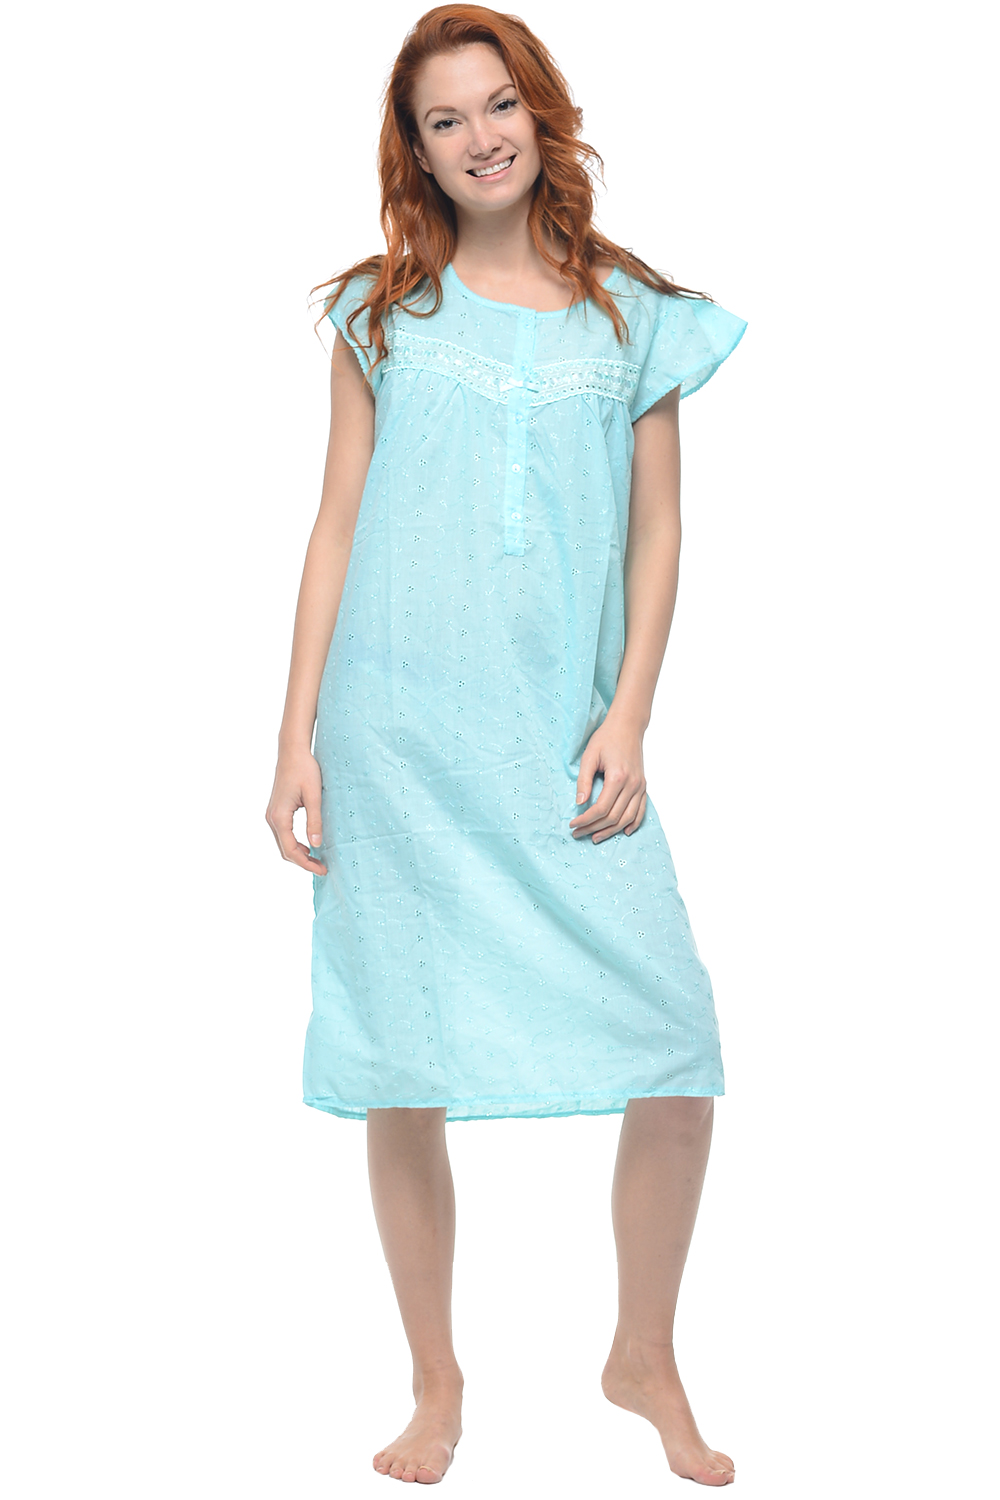 Casual Nights Women's Cap Sleeve Eyelet Embroidered Nightgown